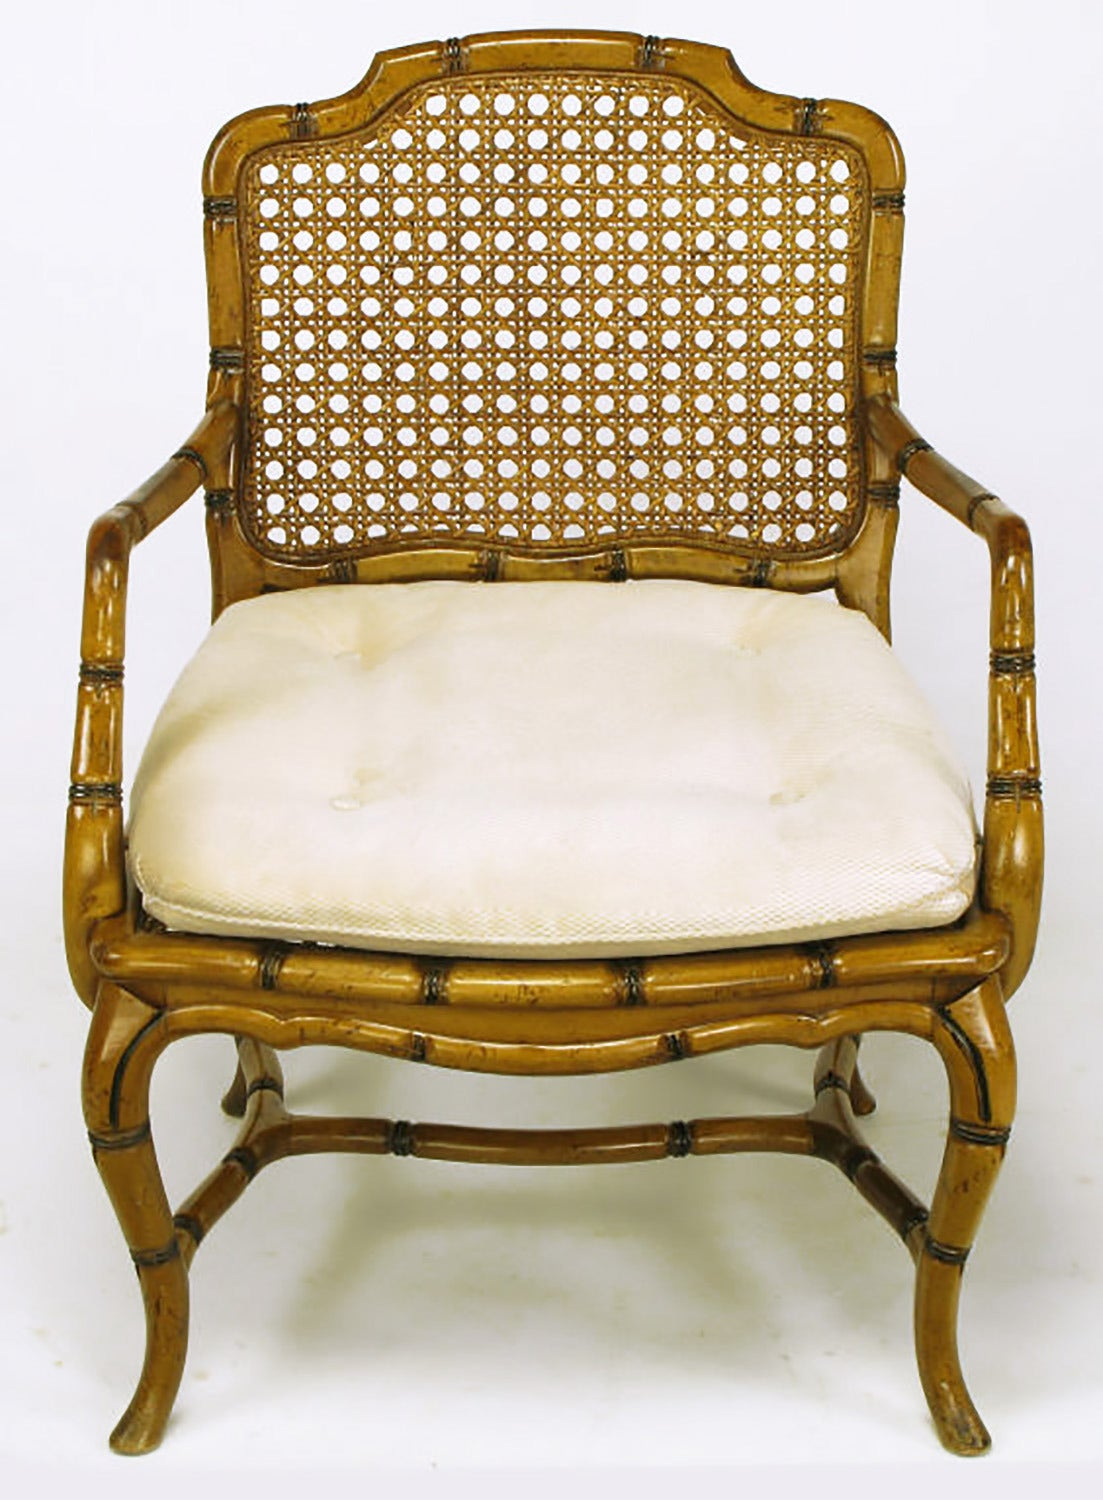 bamboo cane back chairs washable kitchen chair cushions form cabriole leg armchair for sale at